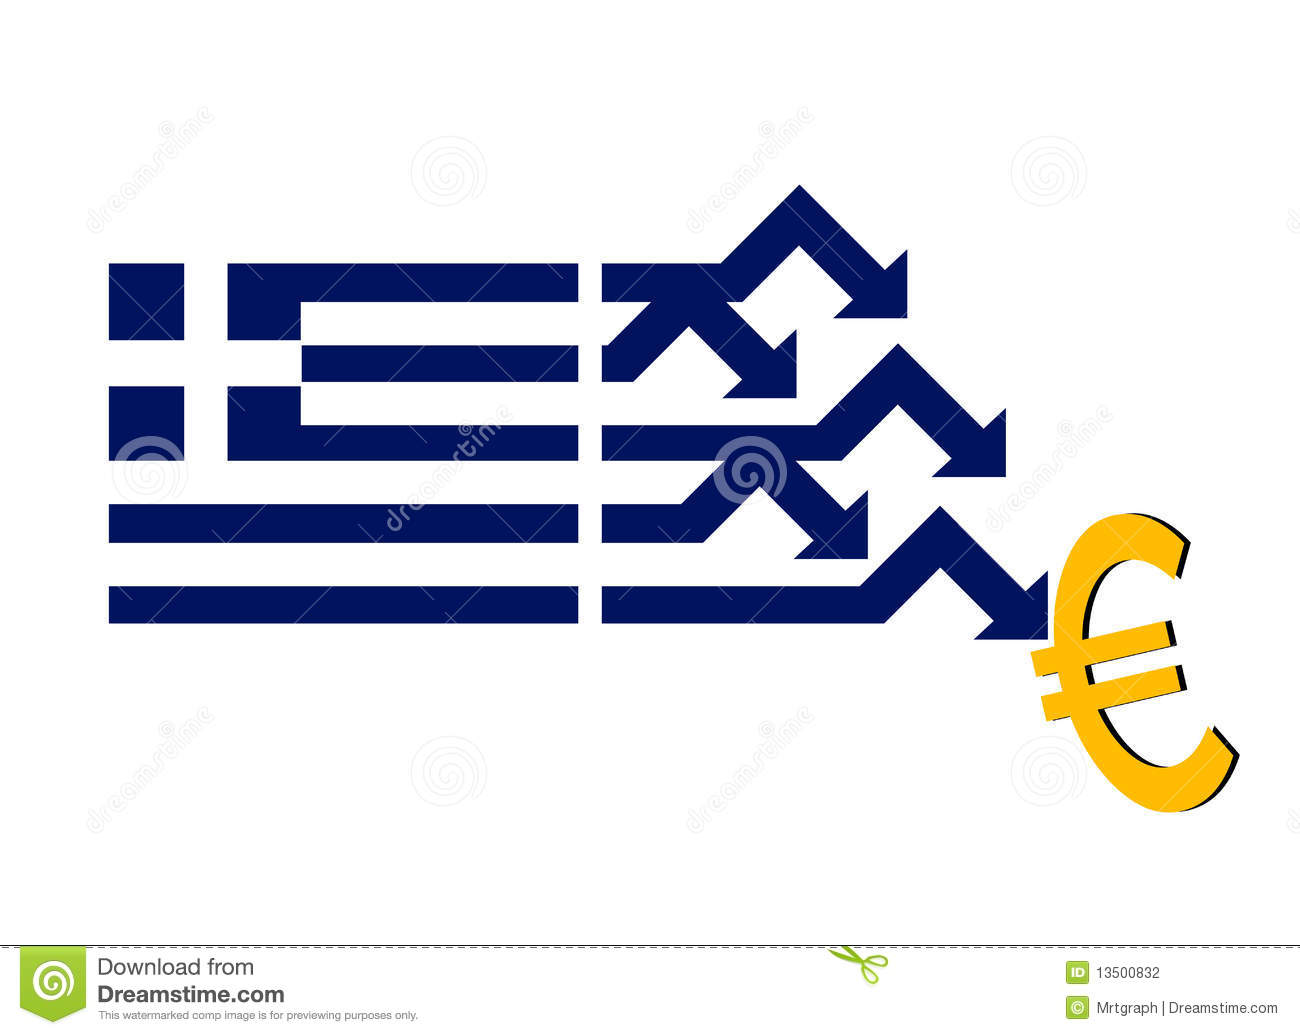 greece's economic turmoil and the global Aristides hatzis on the greek crisis greece at a crossroads: the economic crisis and the economic science greece as a precautionary tale of the welfare state.